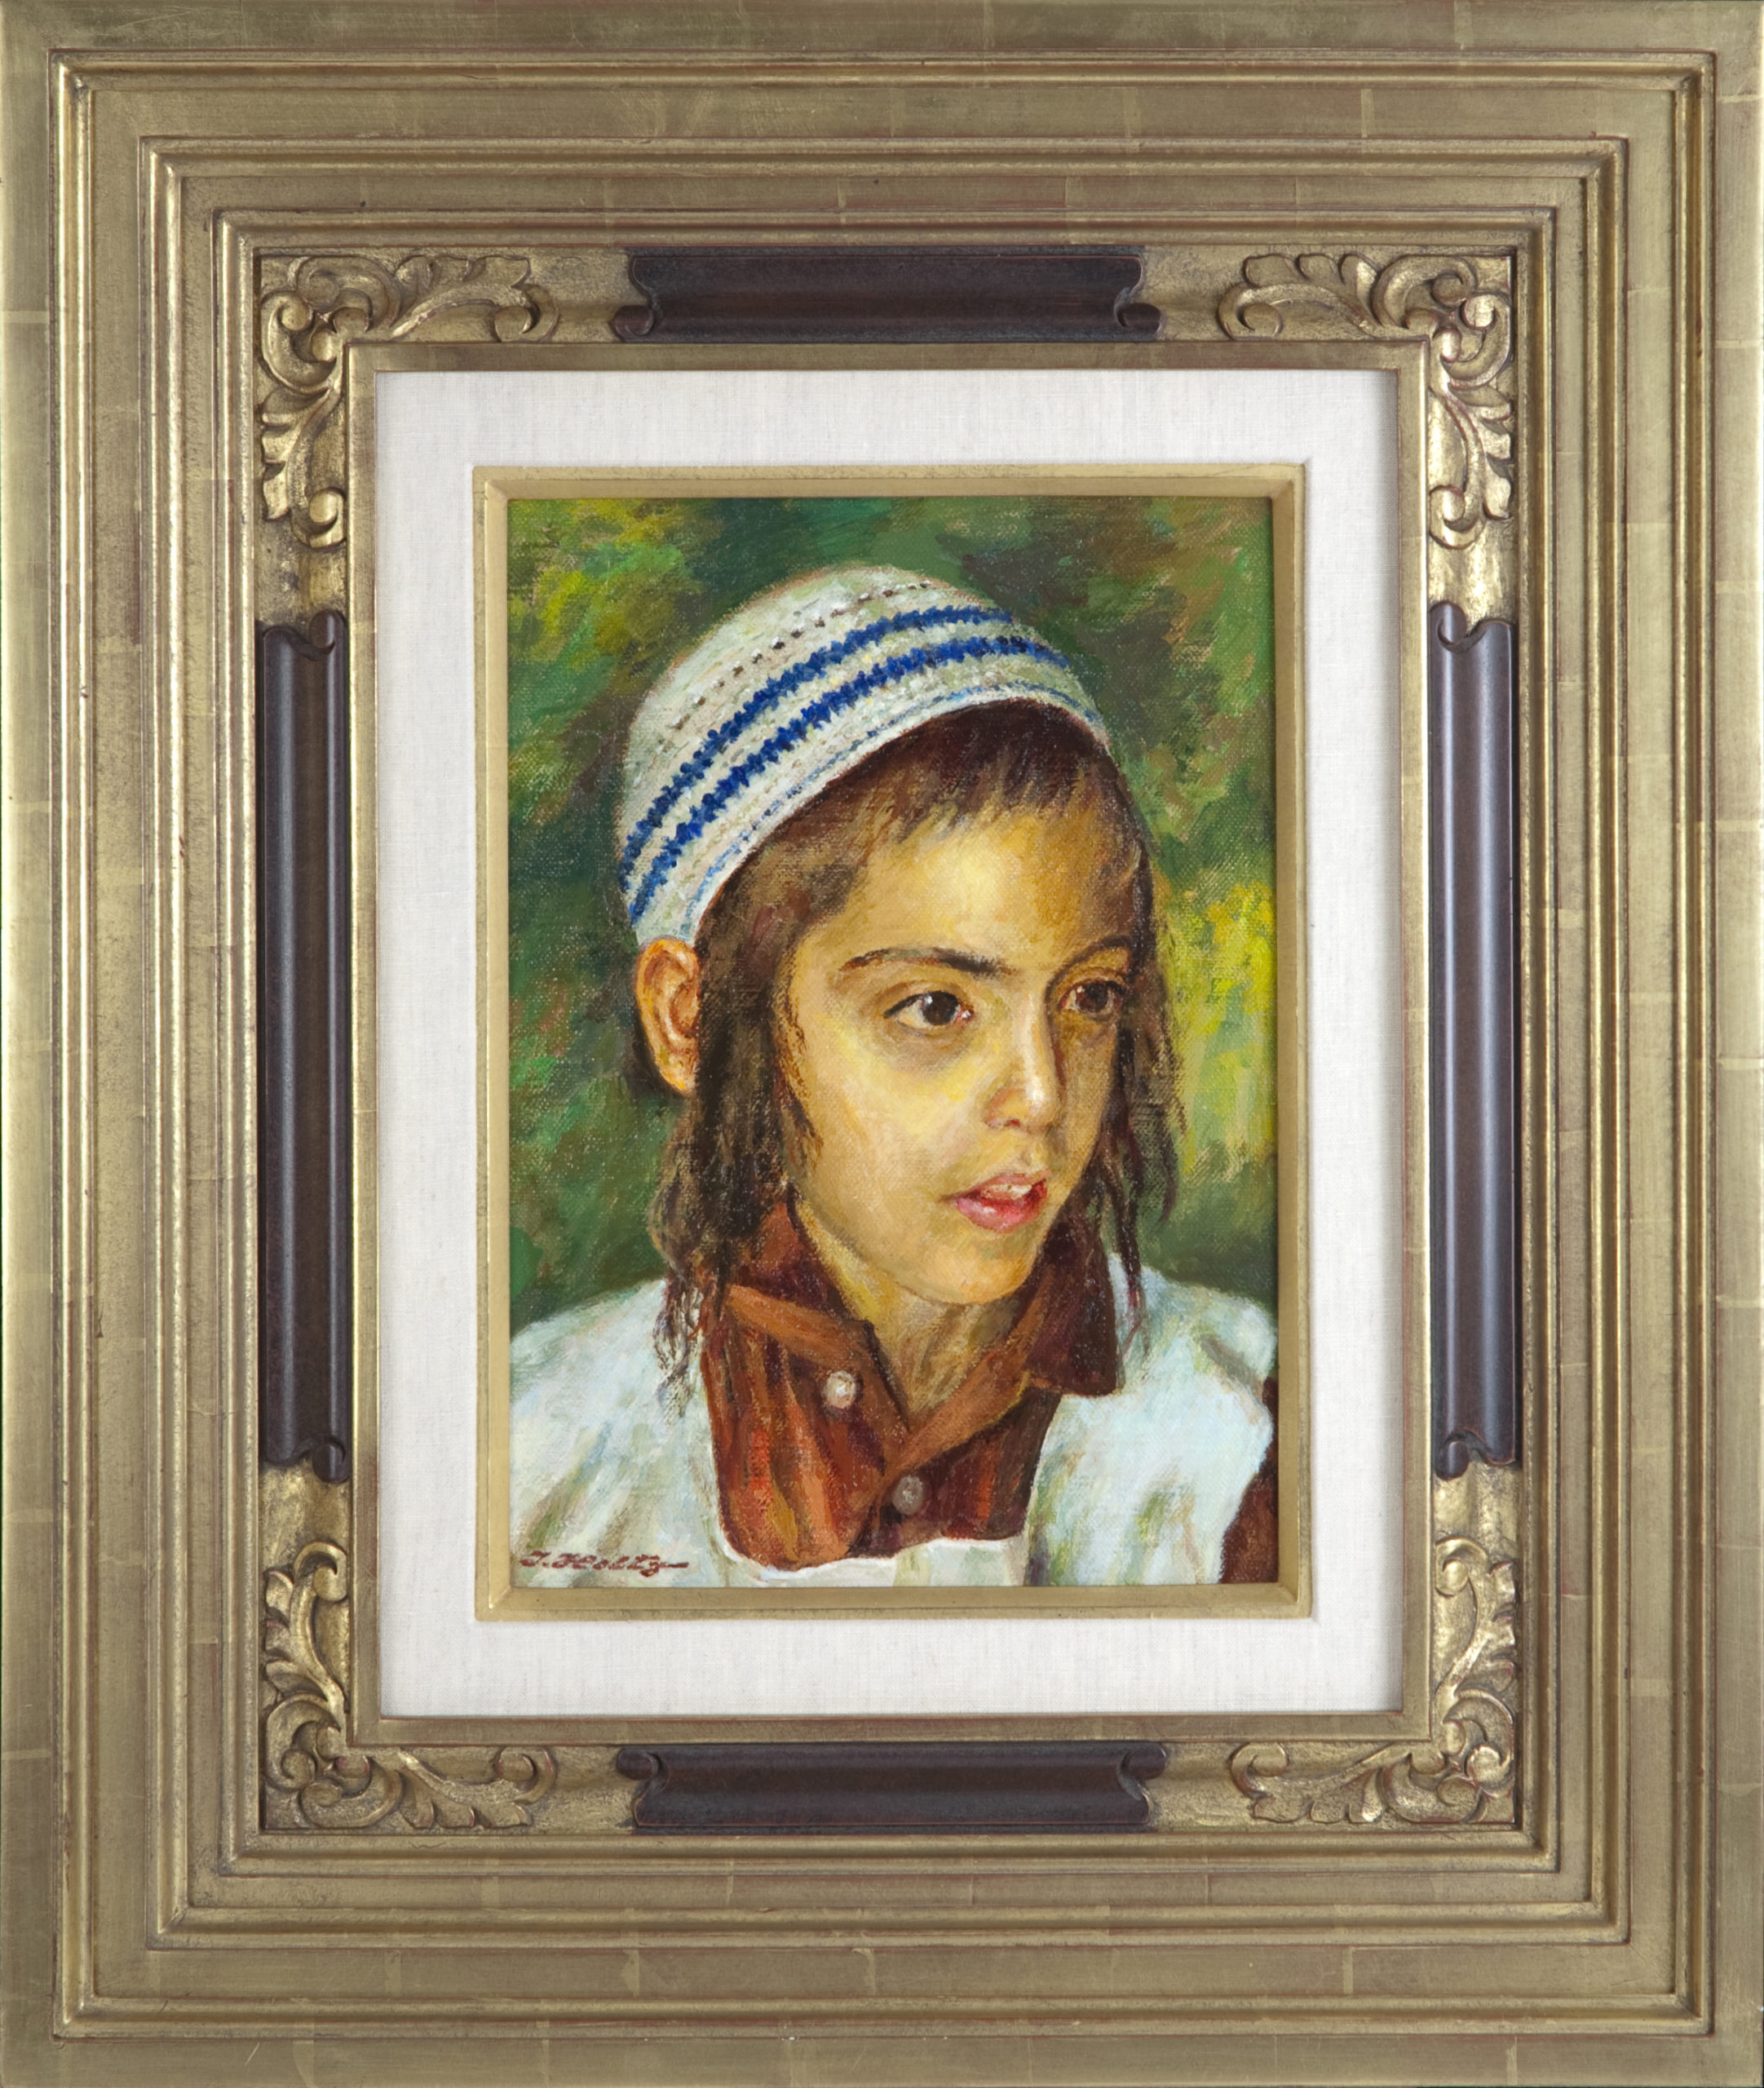 077 Jerusalem Boy 2009 - Oil on Canvas - 10 x 14 - Frame: 21.75 x 26 x 3